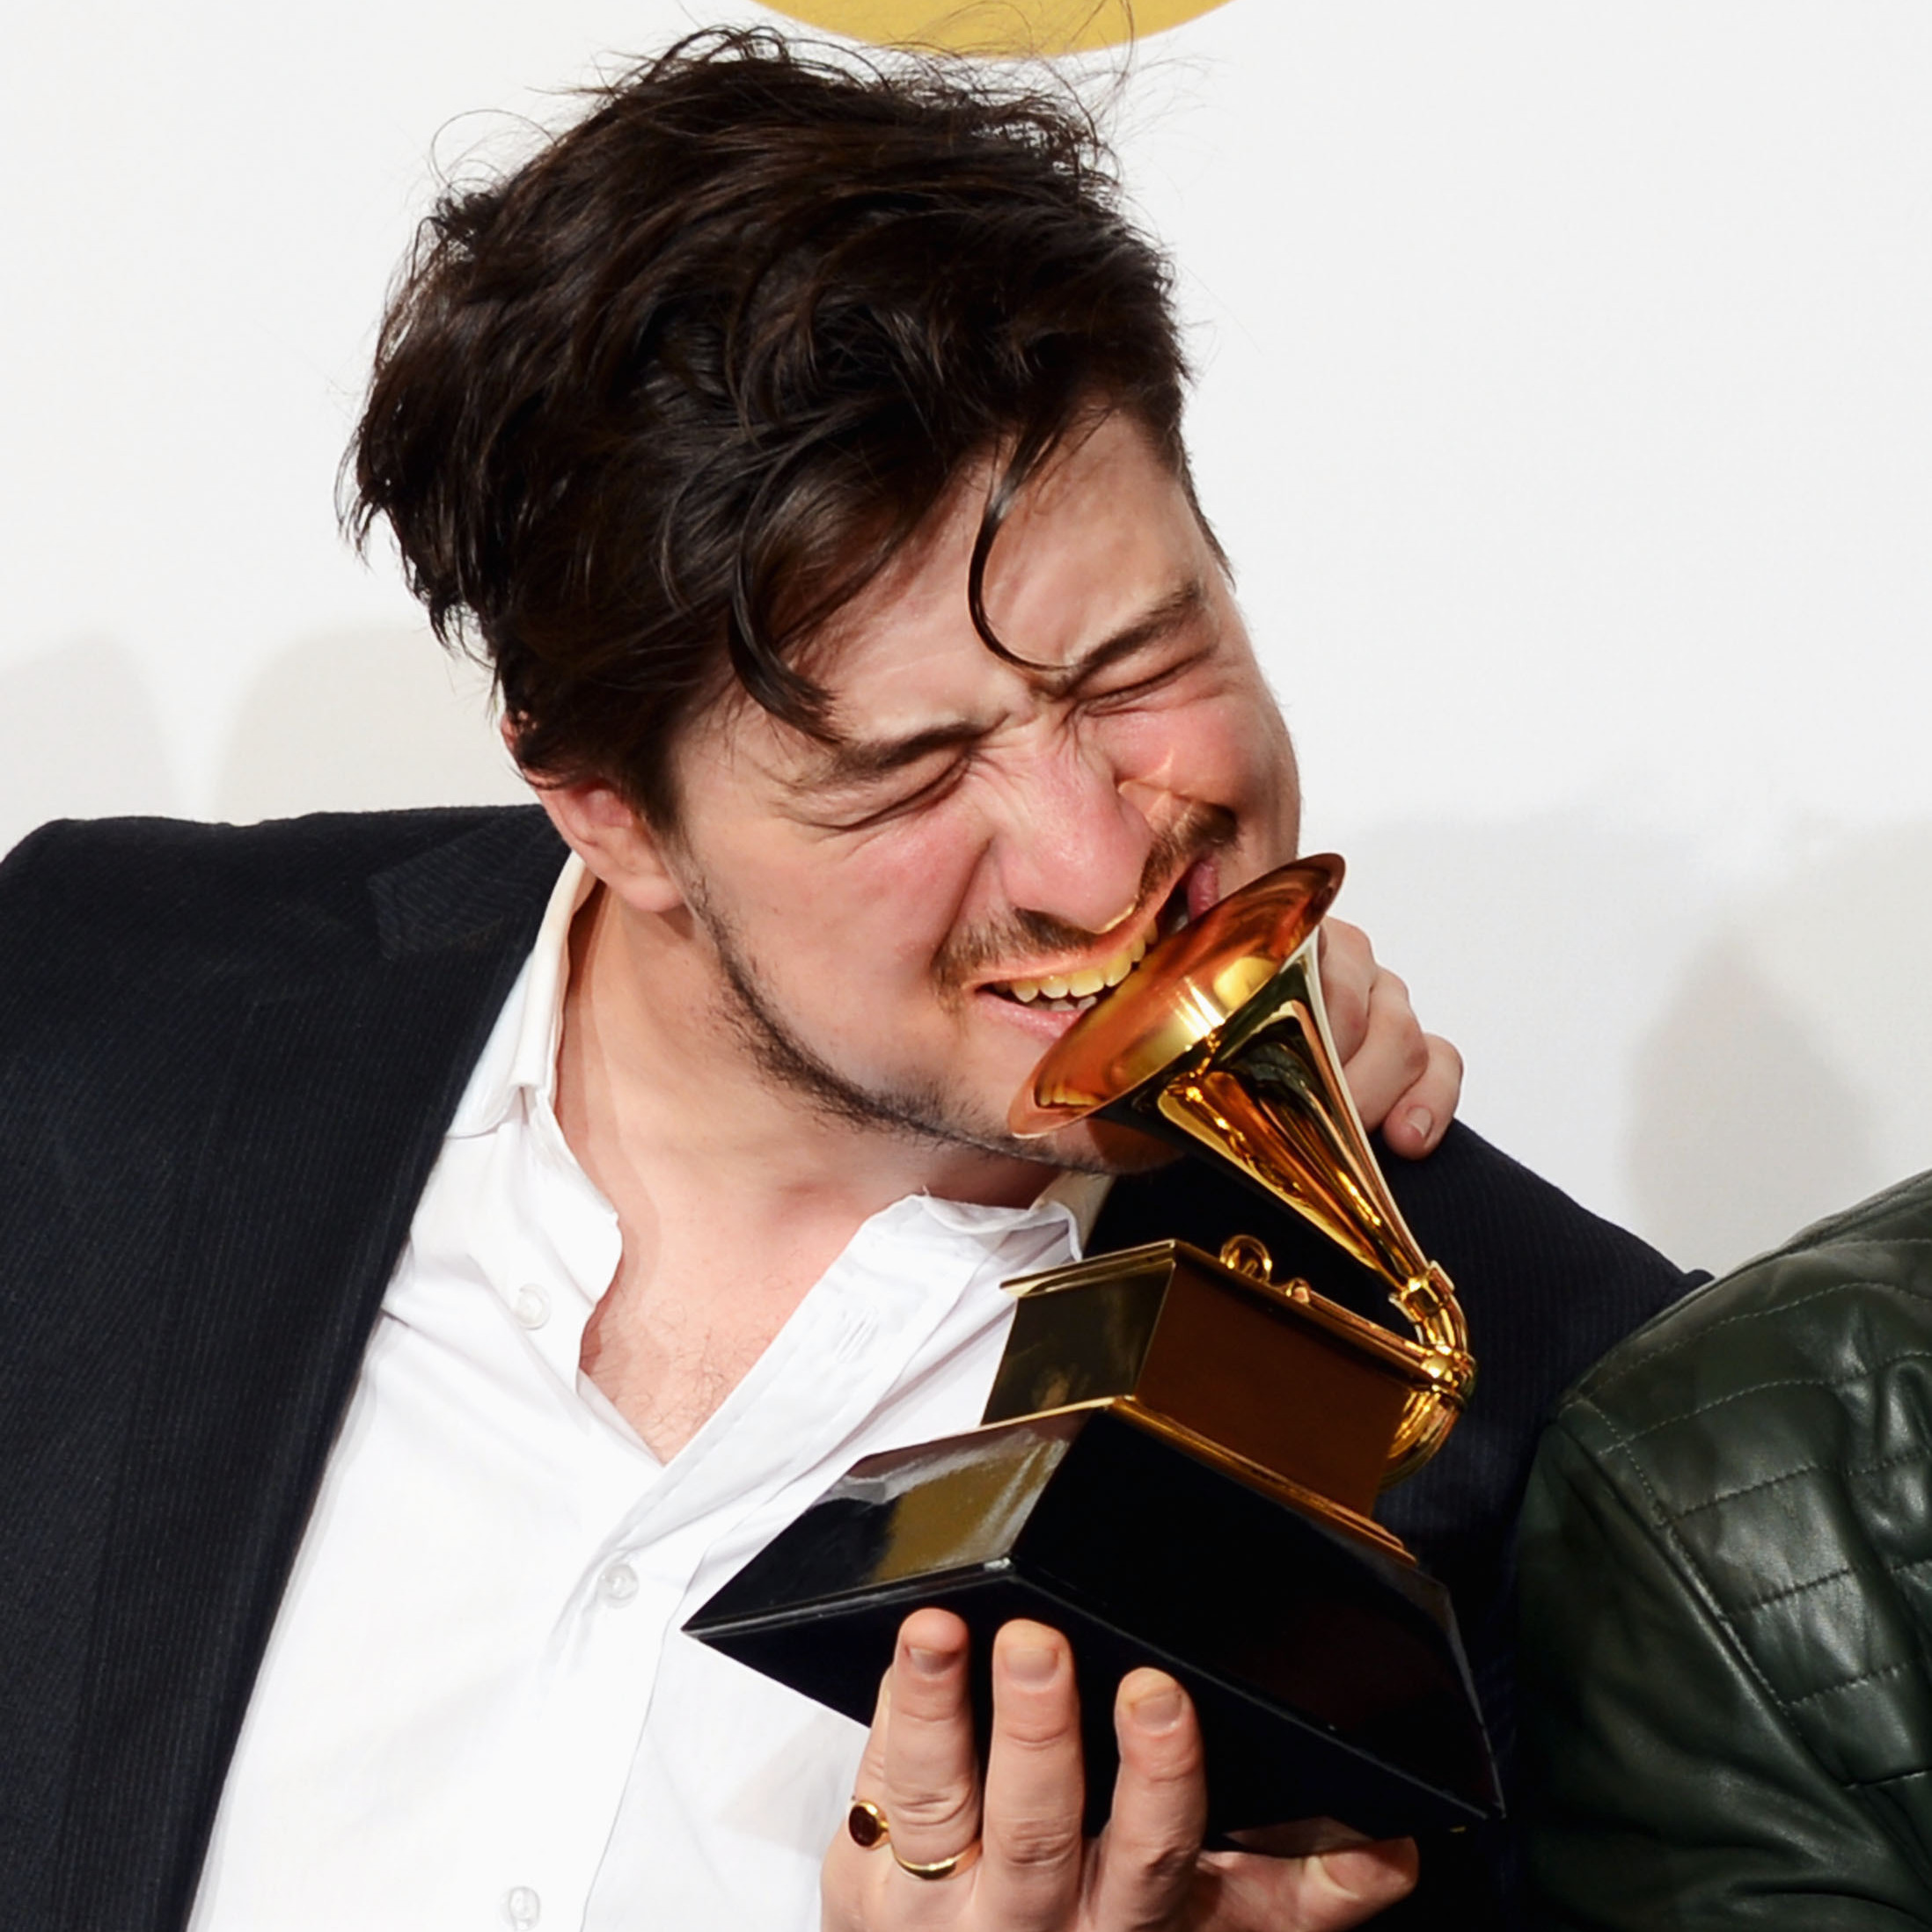 Marcus Mumford of Mumford & Sons, winner of Album of the Year at the 2013 Grammy Awards. To date, the band's winning album, Babel, has sold 1,737,000 copies, according to Nielsen Soundscan.